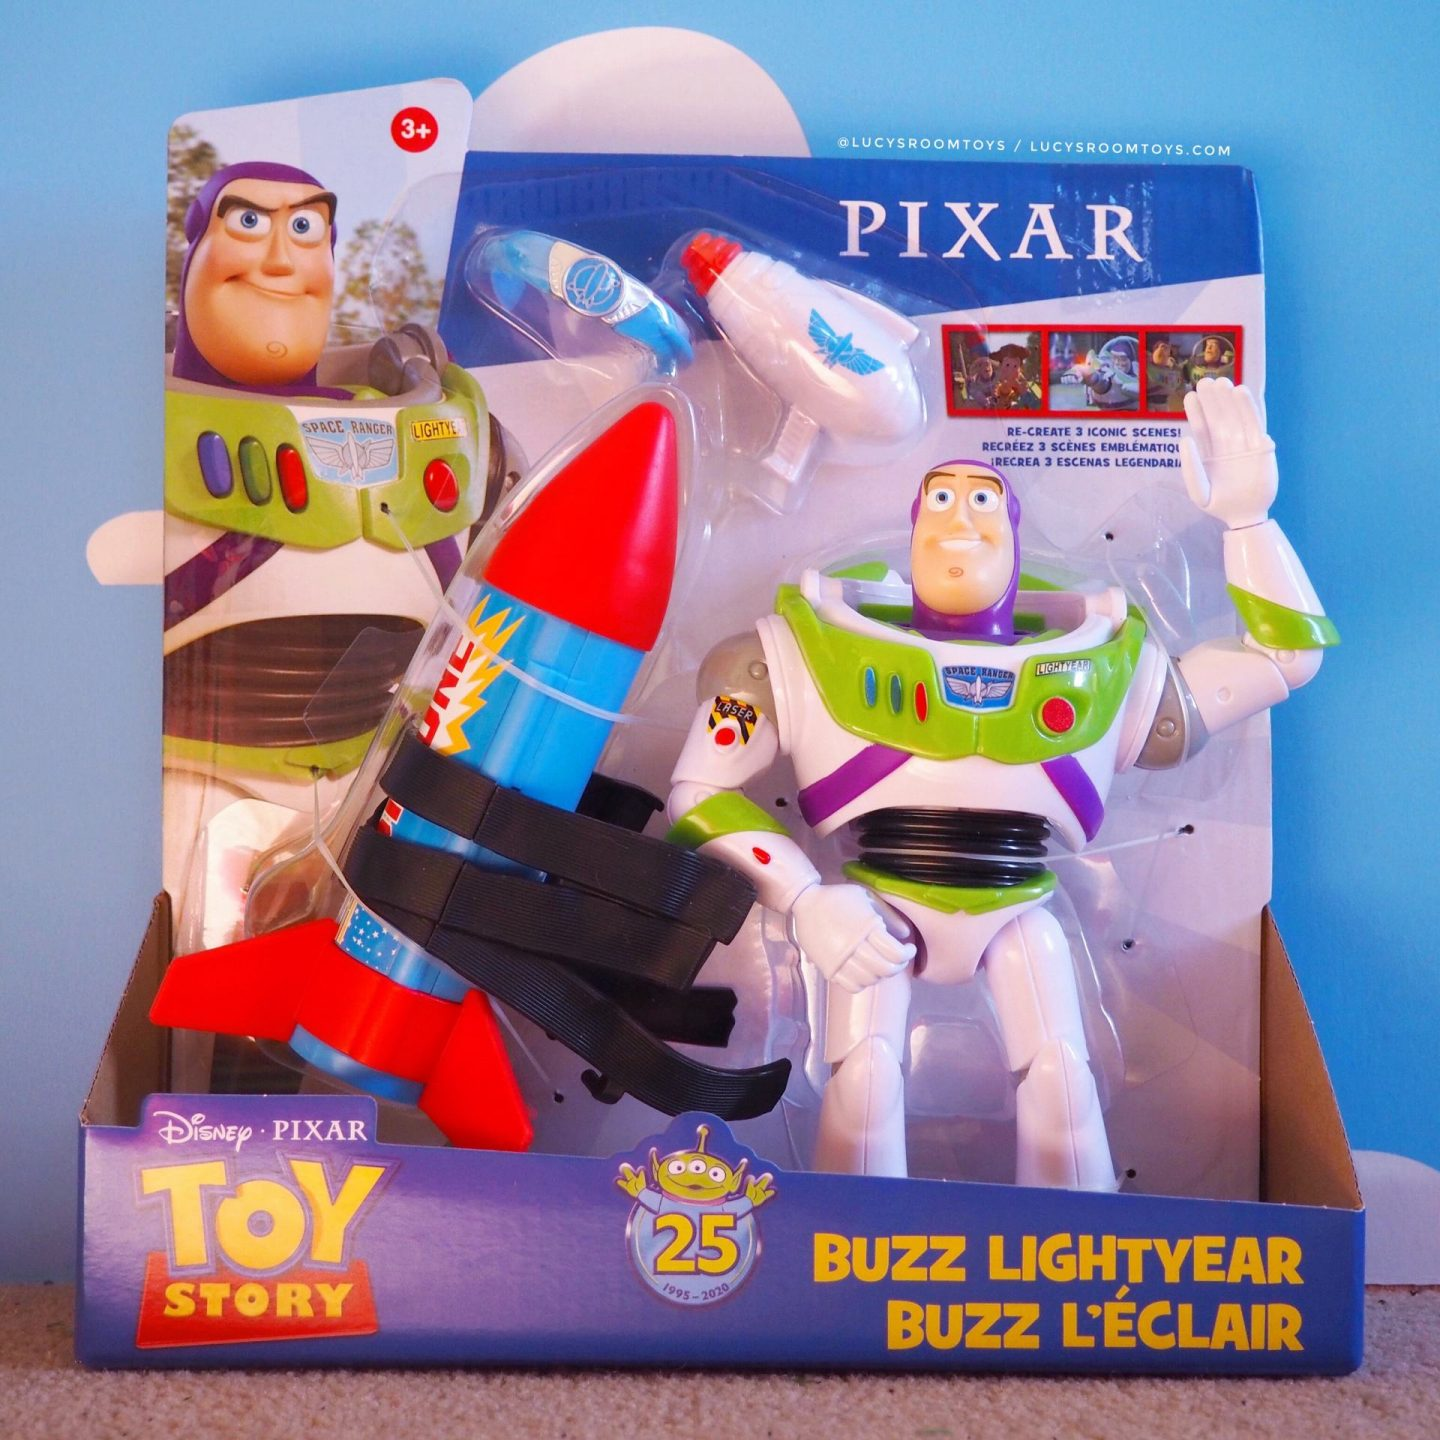 Mattel Toy Story 25th Anniversary Buzz Lightyear Figure & Accessory Set